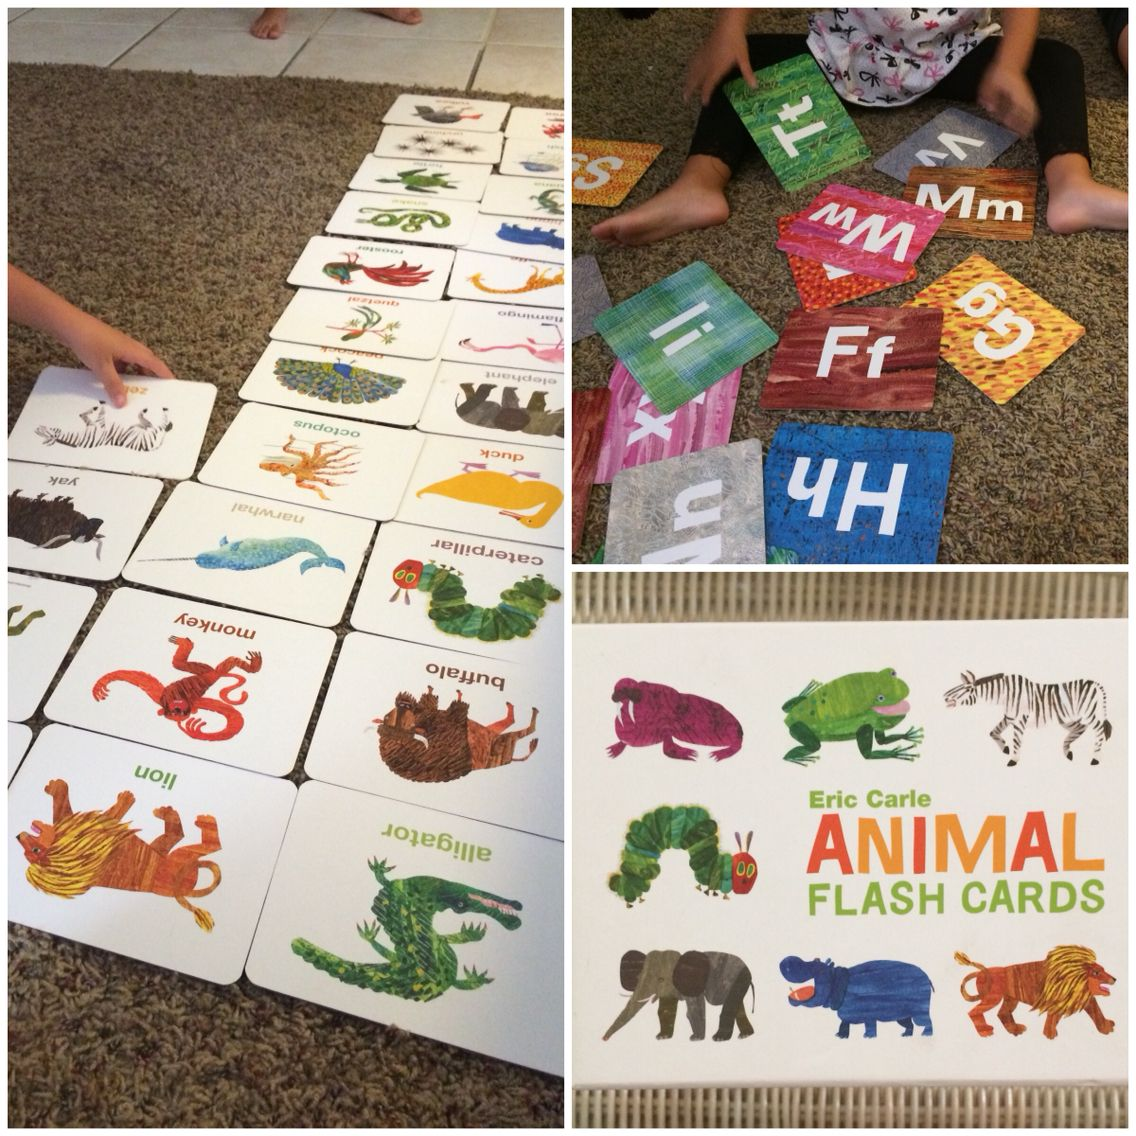 Eric Carle Animal Flash Cards Alphabet Recognition